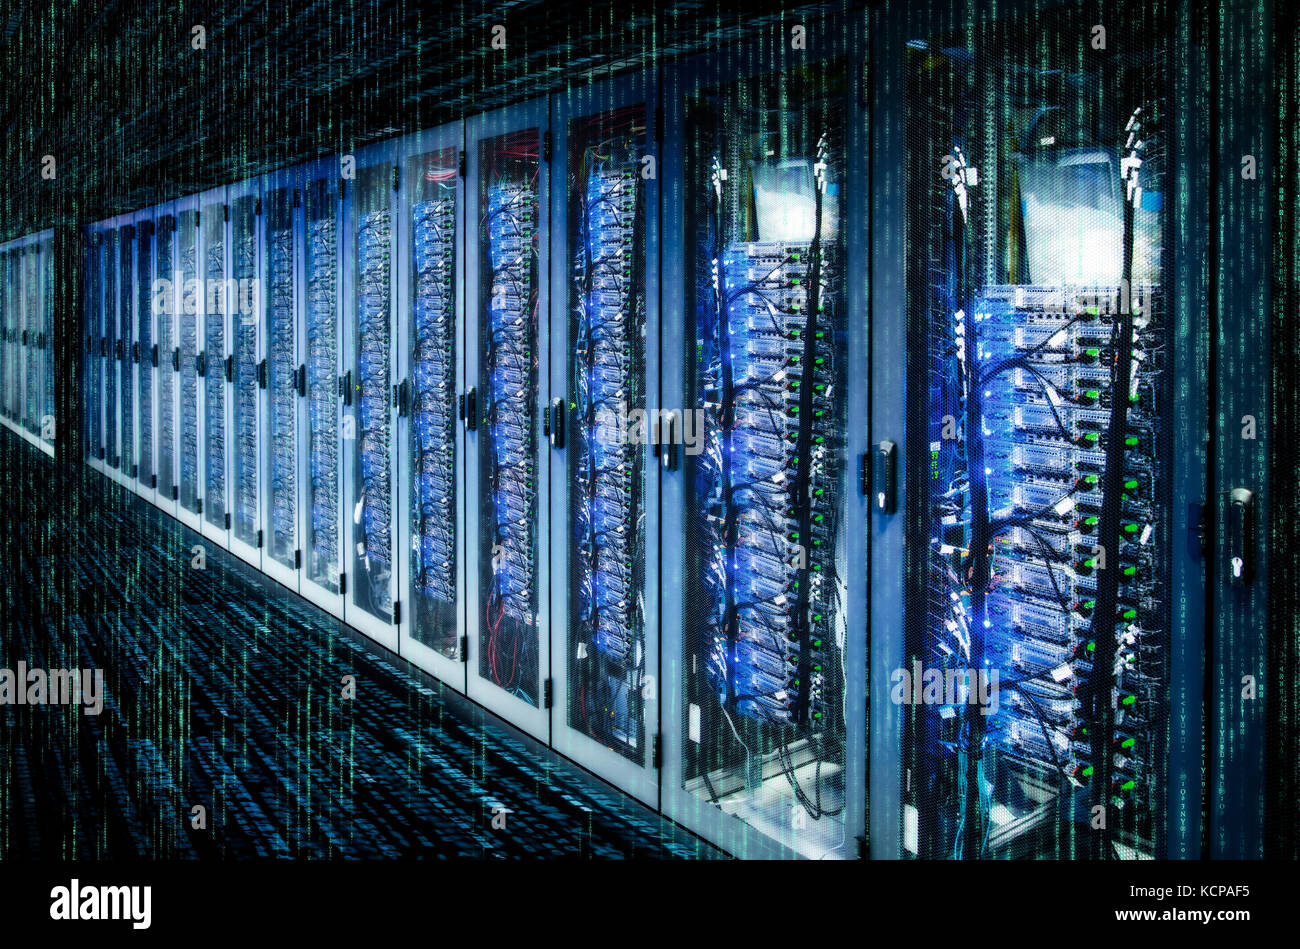 Network cabinets with server racks in a data center with matrix. - Stock Image